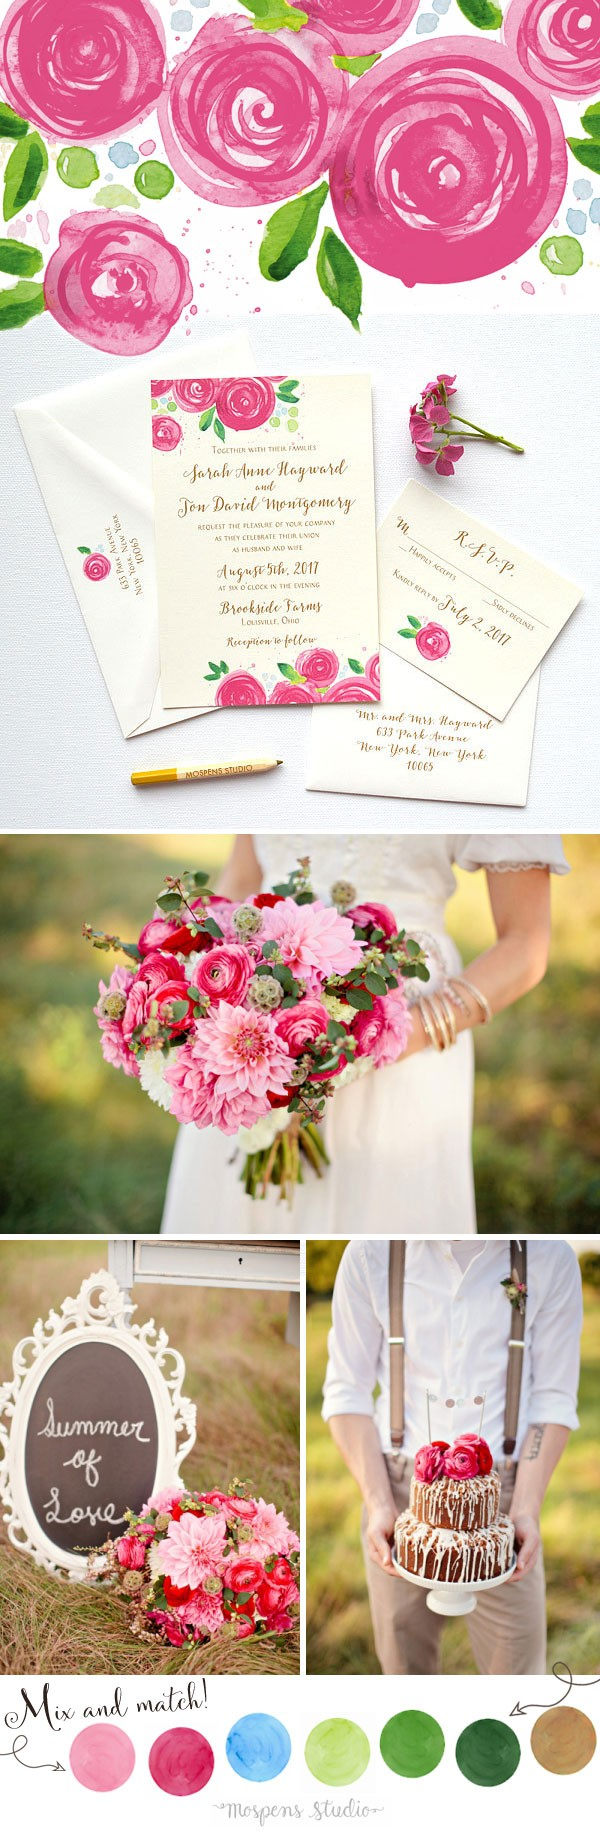 Late Summer Wedding Ideas You'll Love! Michelle Mospens original Raspberry Rose Blooms hand-painted art in watercolor. Each design is then printed stroke for stroke for a LOVELY hand-painted effect. www.mospensstudio.com